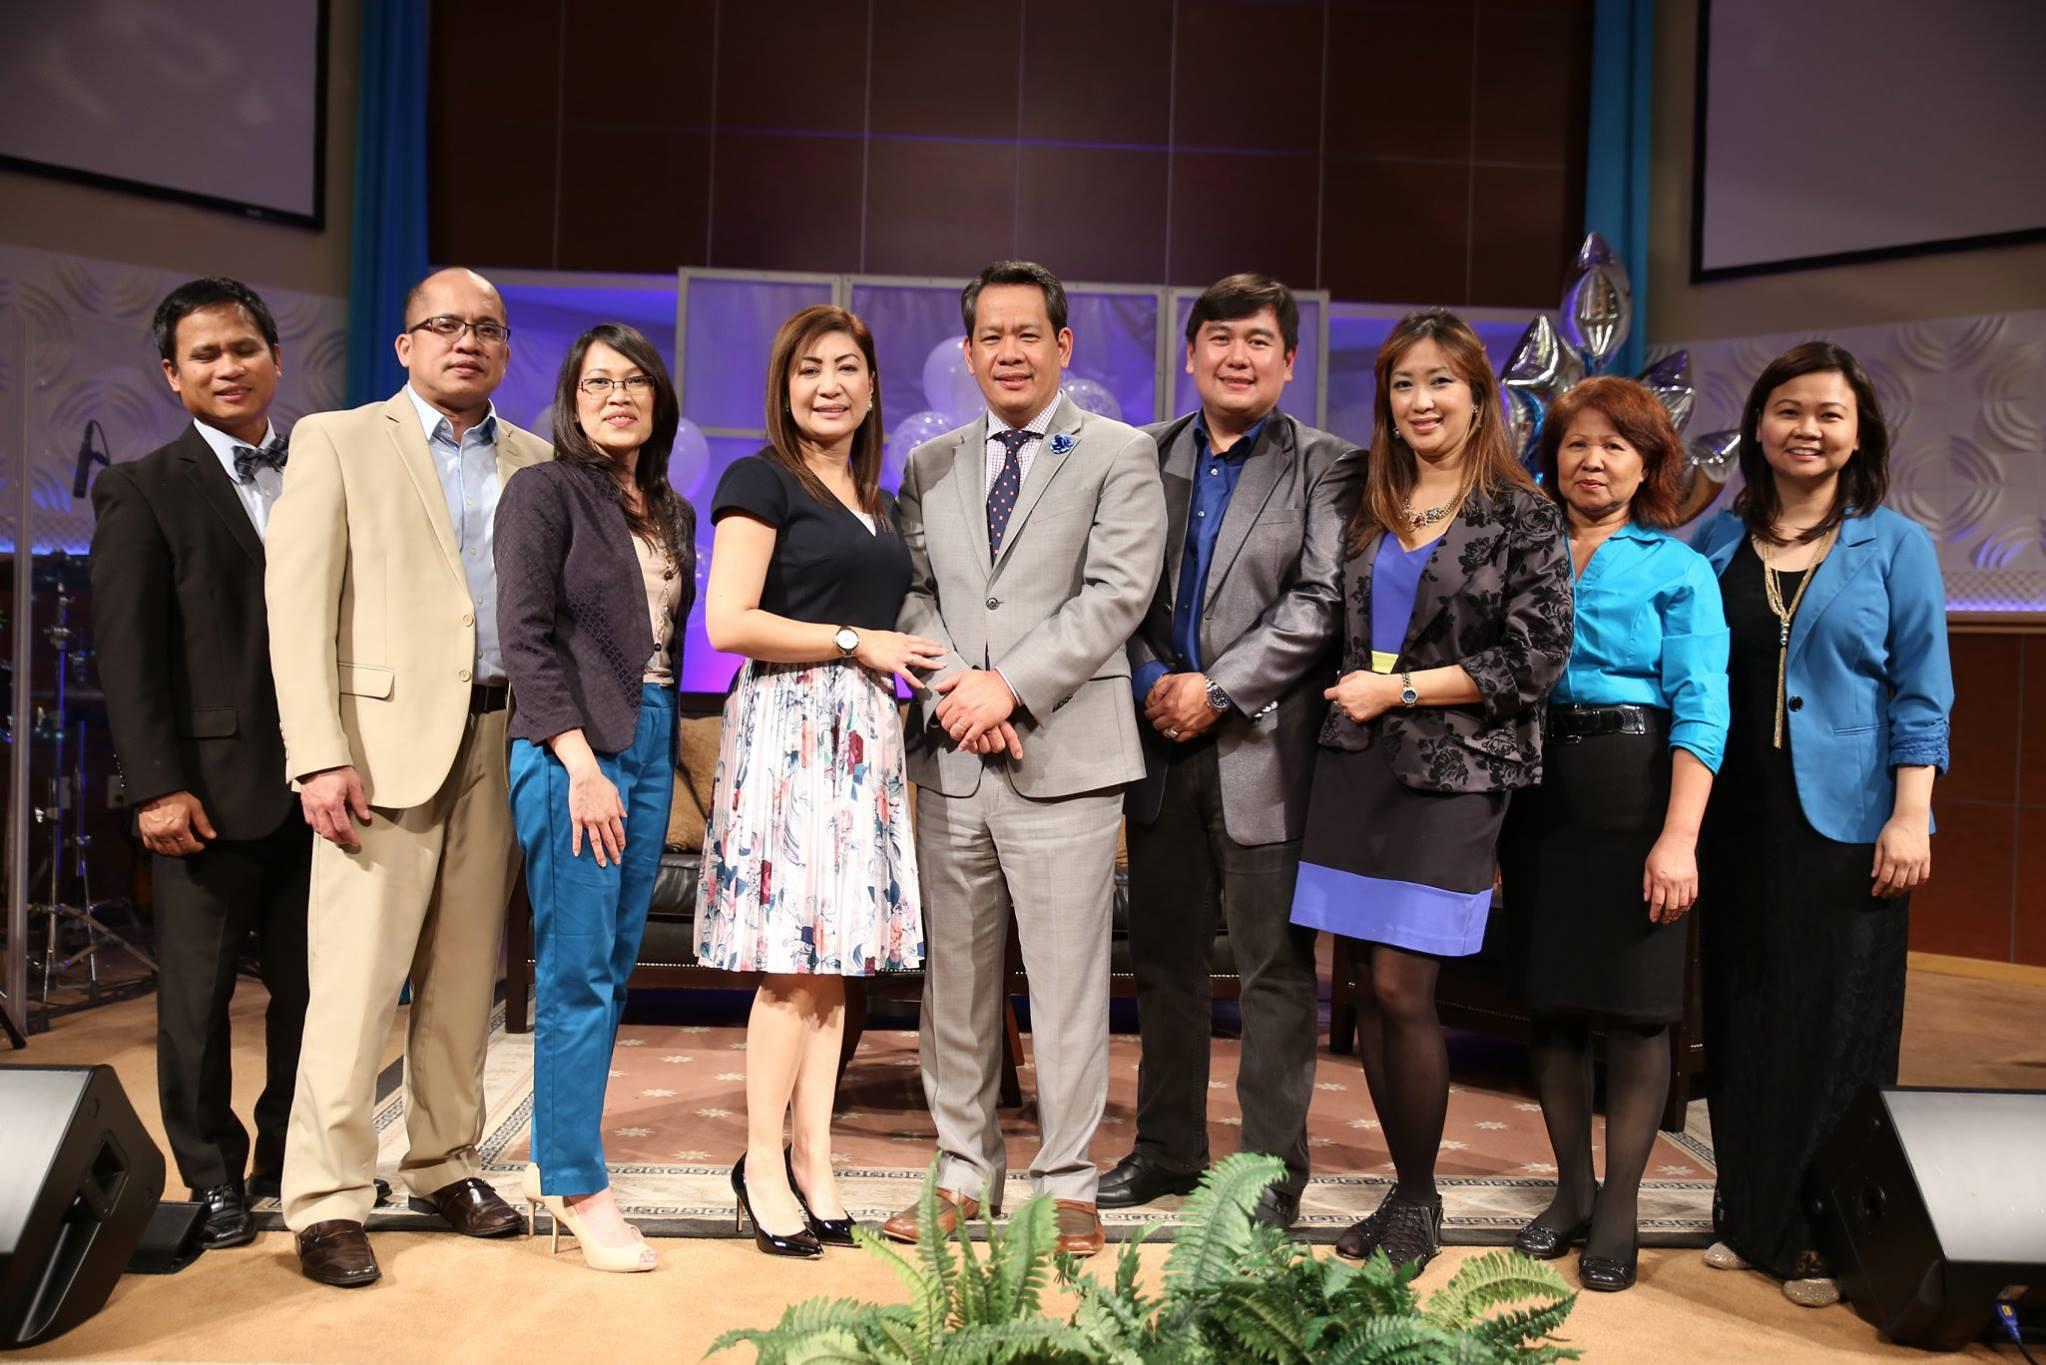 construction and pentecostal missionary church Welcome to the pmcc 4th watch truth project, the project that exposes the truth of this filipino christian doomsday the pentecostal missionary church of christ.